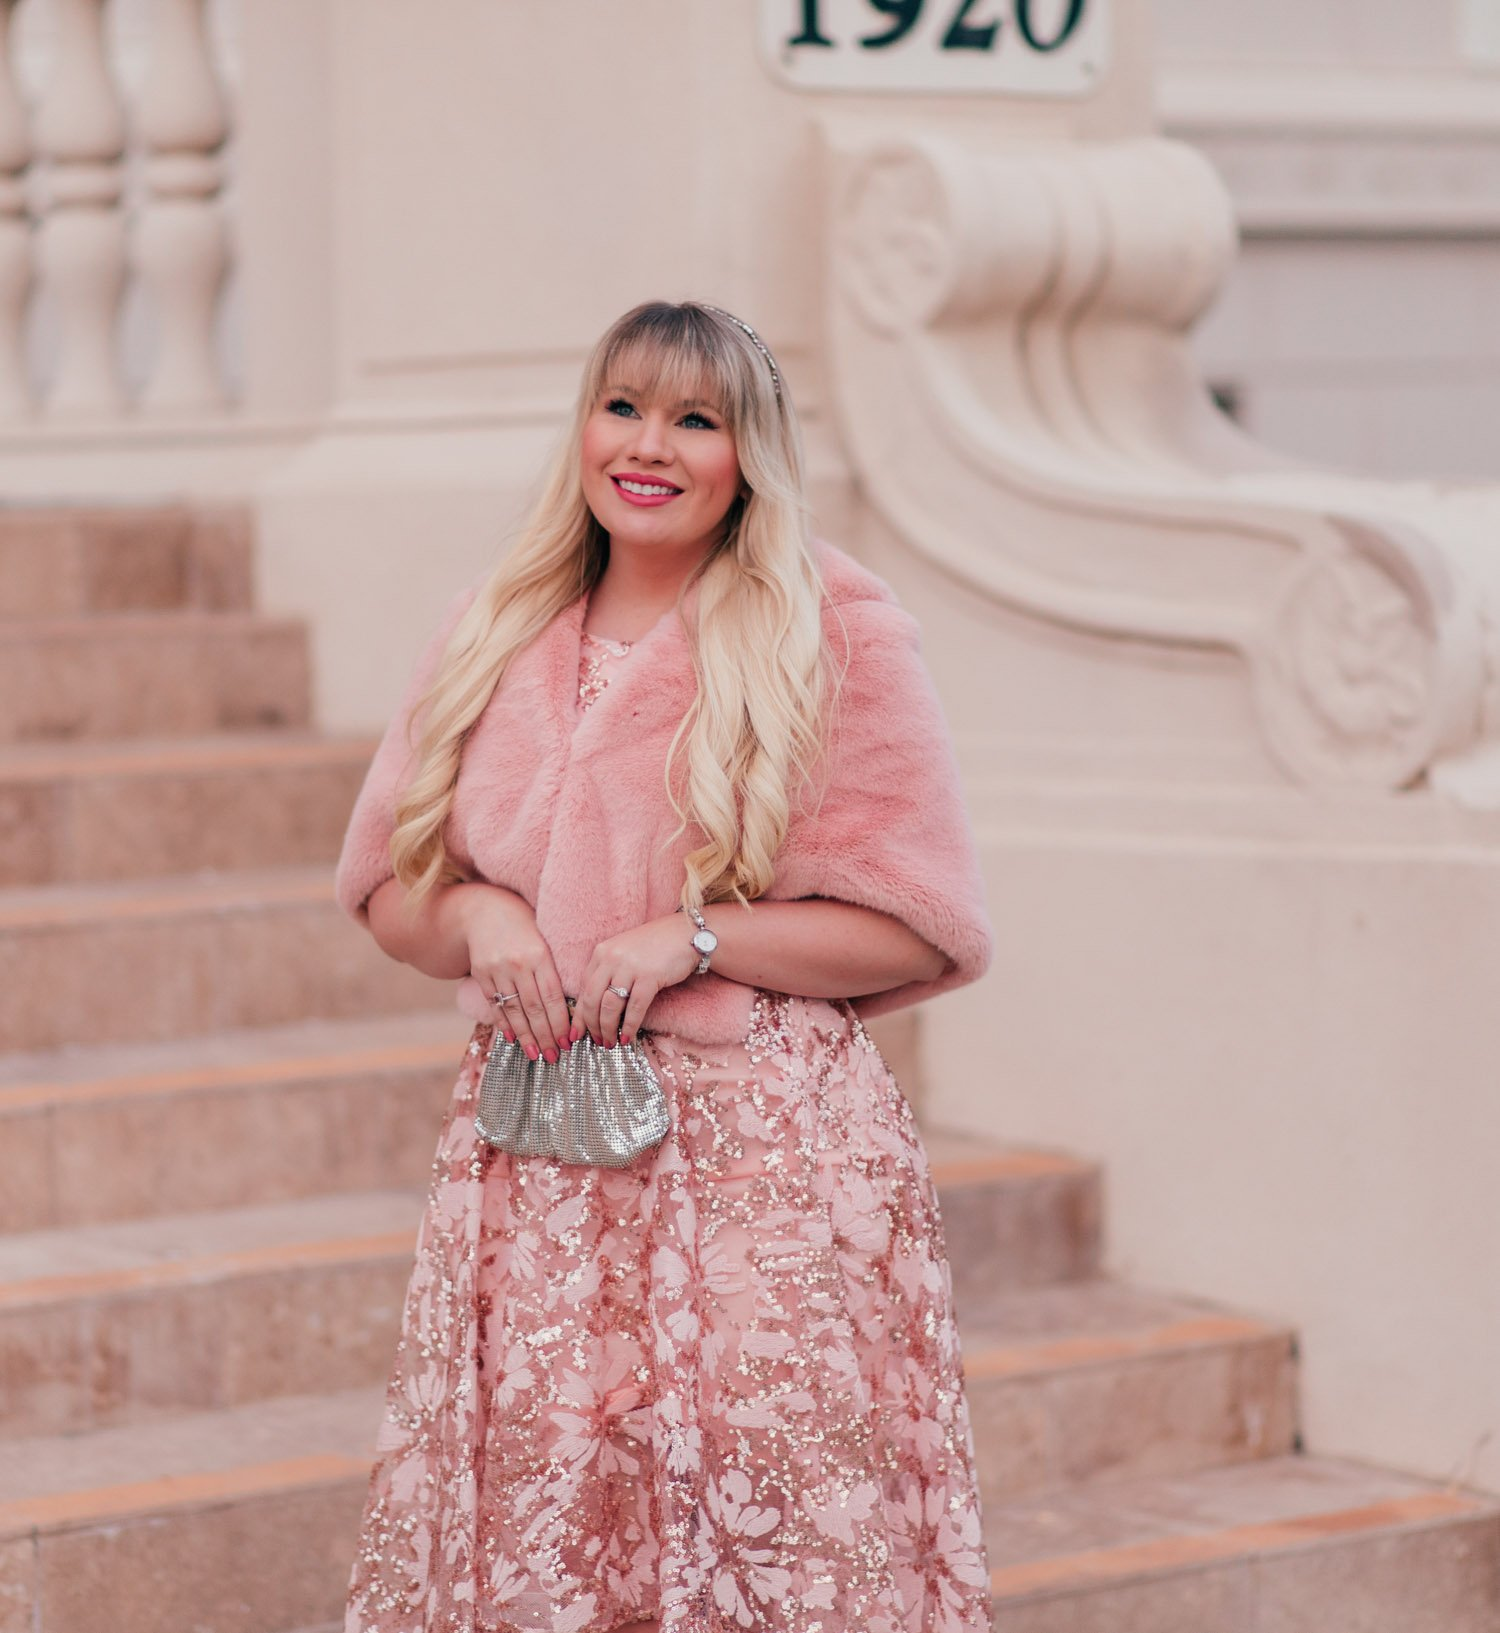 Elizabeth Hugen of Lizzie in Lace wears a pink sequined dress